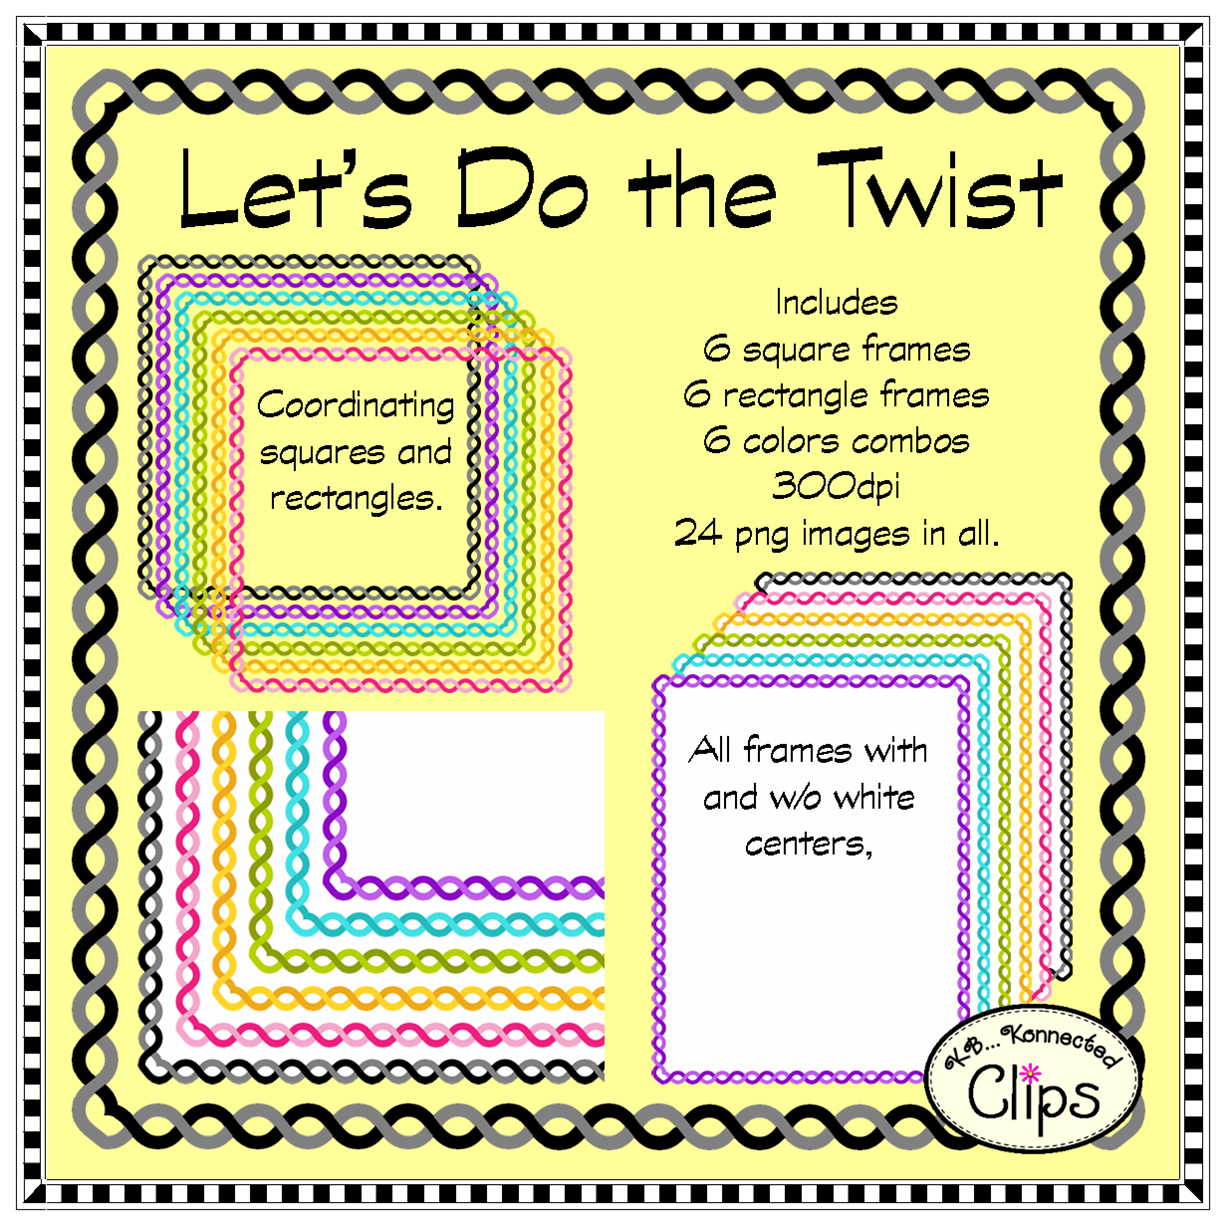 http://www.teacherspayteachers.com/Product/Lets-Do-the-Twist-Frame-Collection-1254407